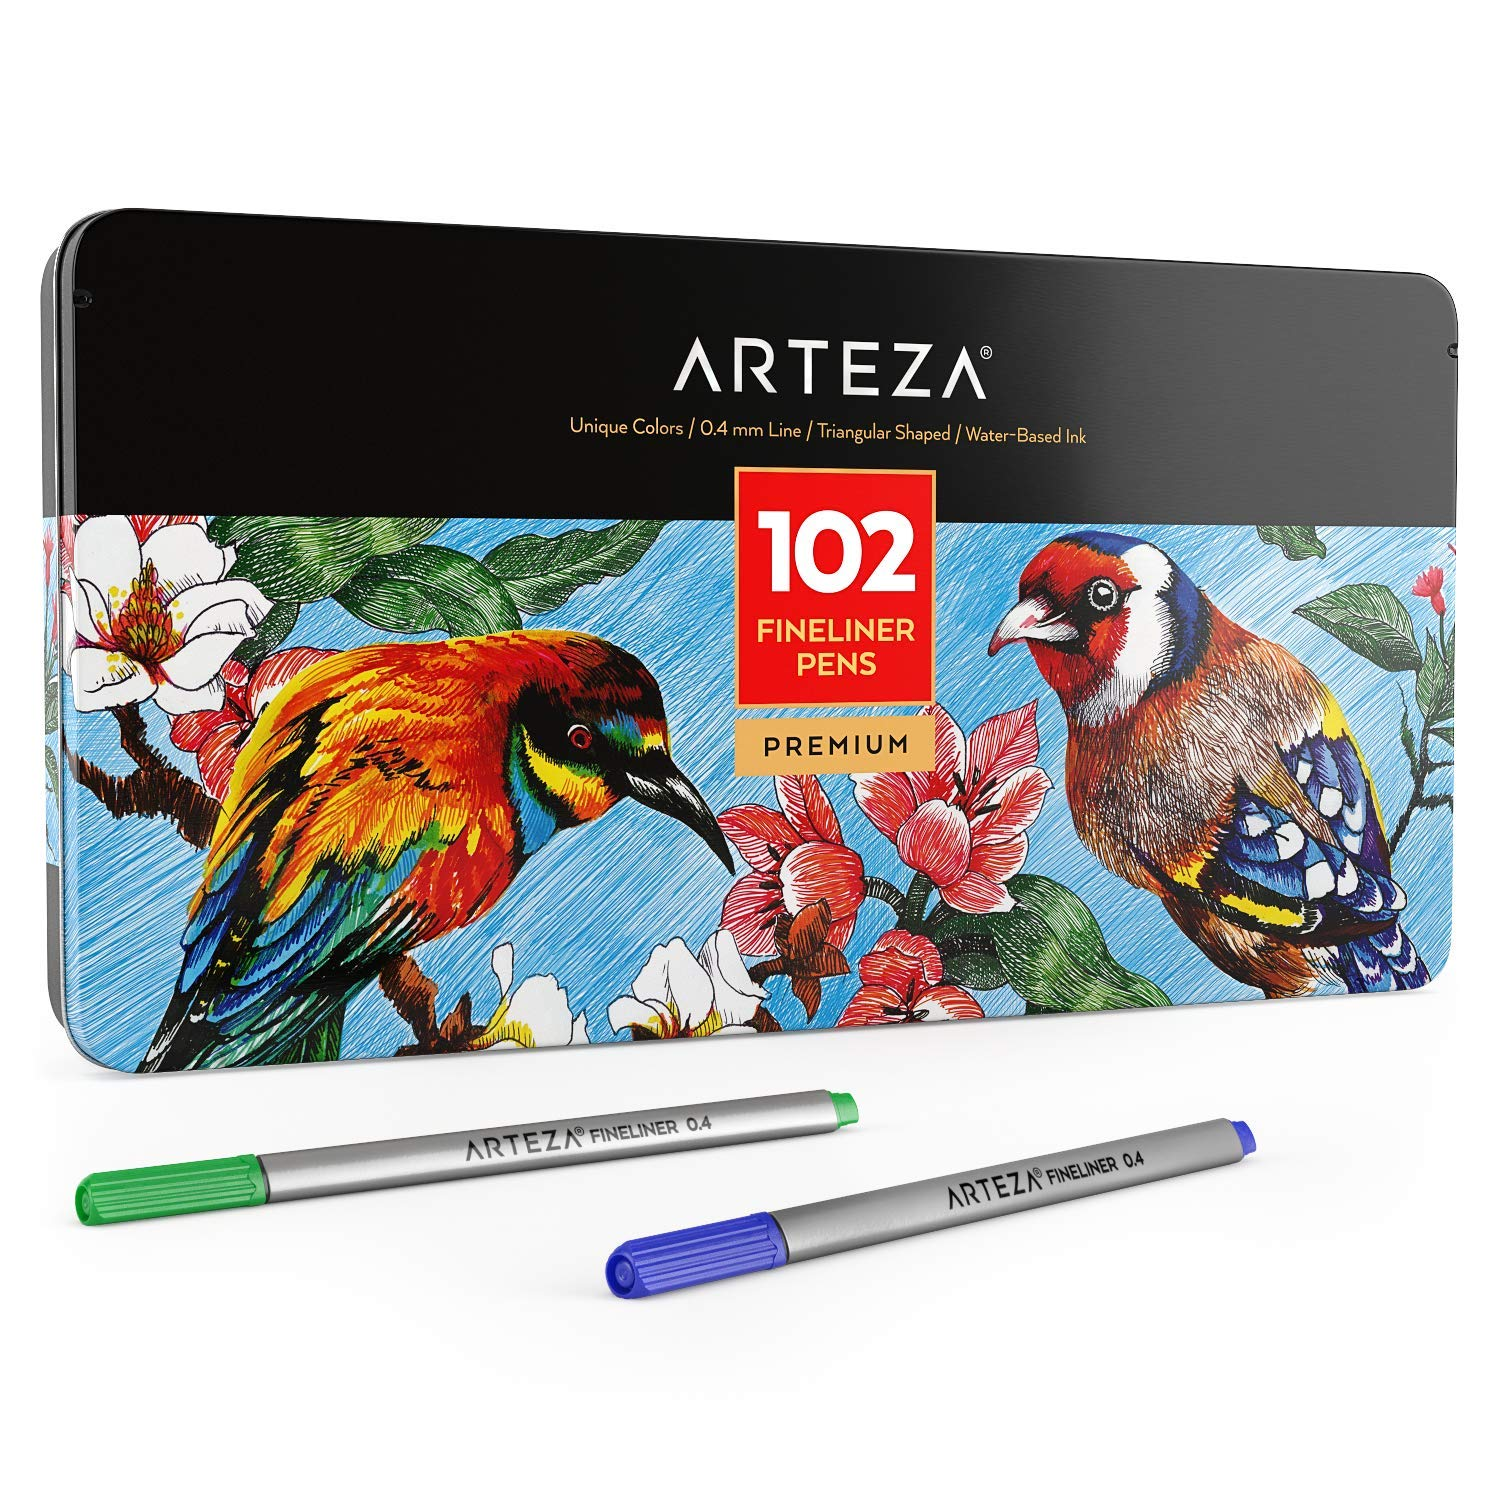 ARTEZA Fineliners Fine Point Pens, Set of 102 Fine Tip Markers with 0.4mm Tips & Sure Grip Ergonomic Barrels, Brilliant Assorted Colors for Coloring, Drawing & Detailing + Sturdy Metal Storage by ARTEZA